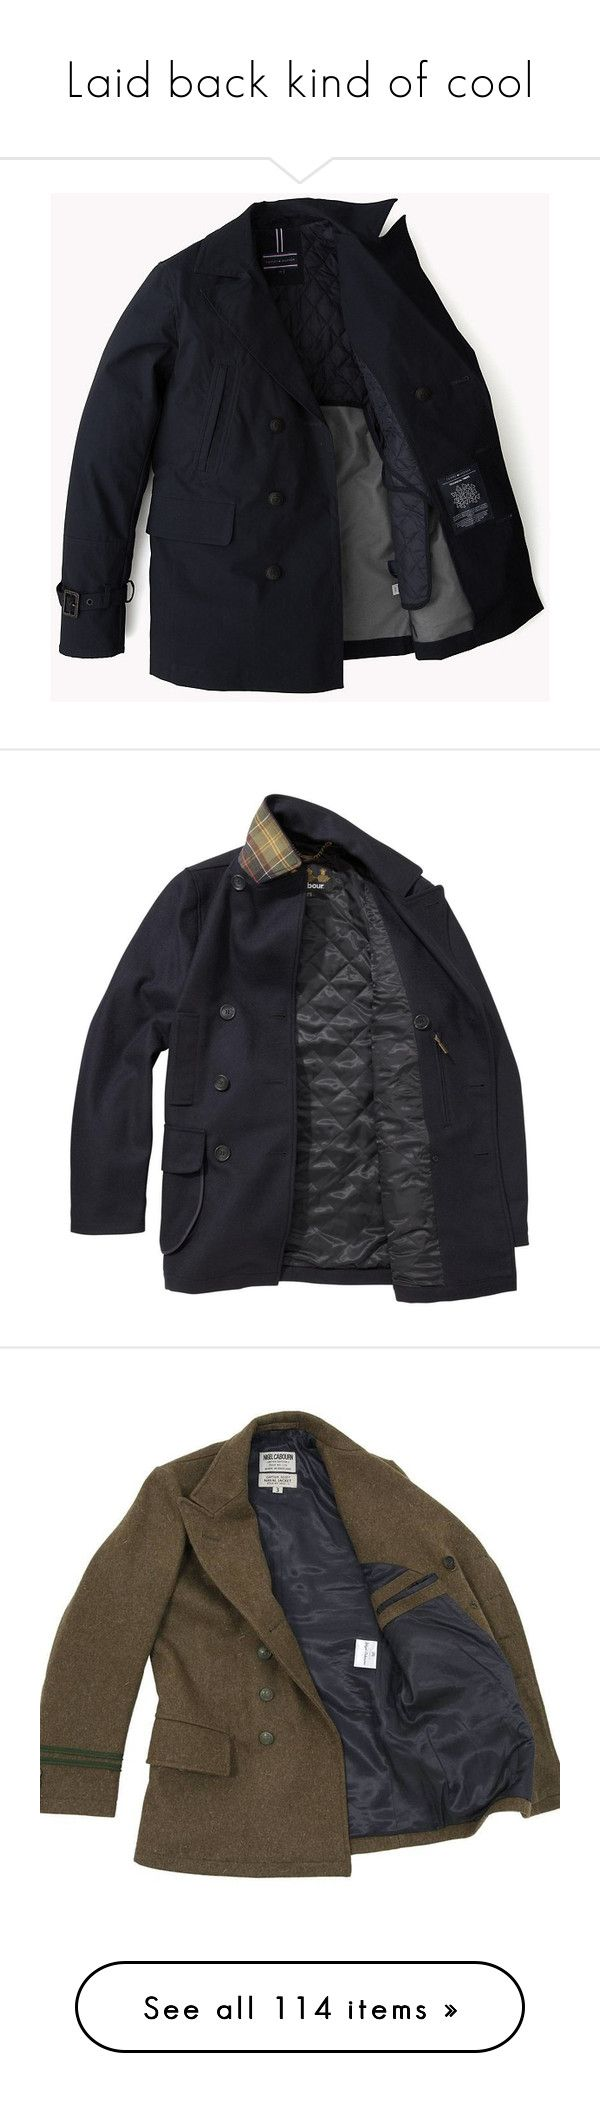 """Laid back kind of cool"" by orenjimari ❤ liked on Polyvore featuring men's fashion, men's clothing, men's outerwear, men's coats, jackets, men, outerwear, mens double breasted coat, mens wool military coat and mens double breasted pea coat"